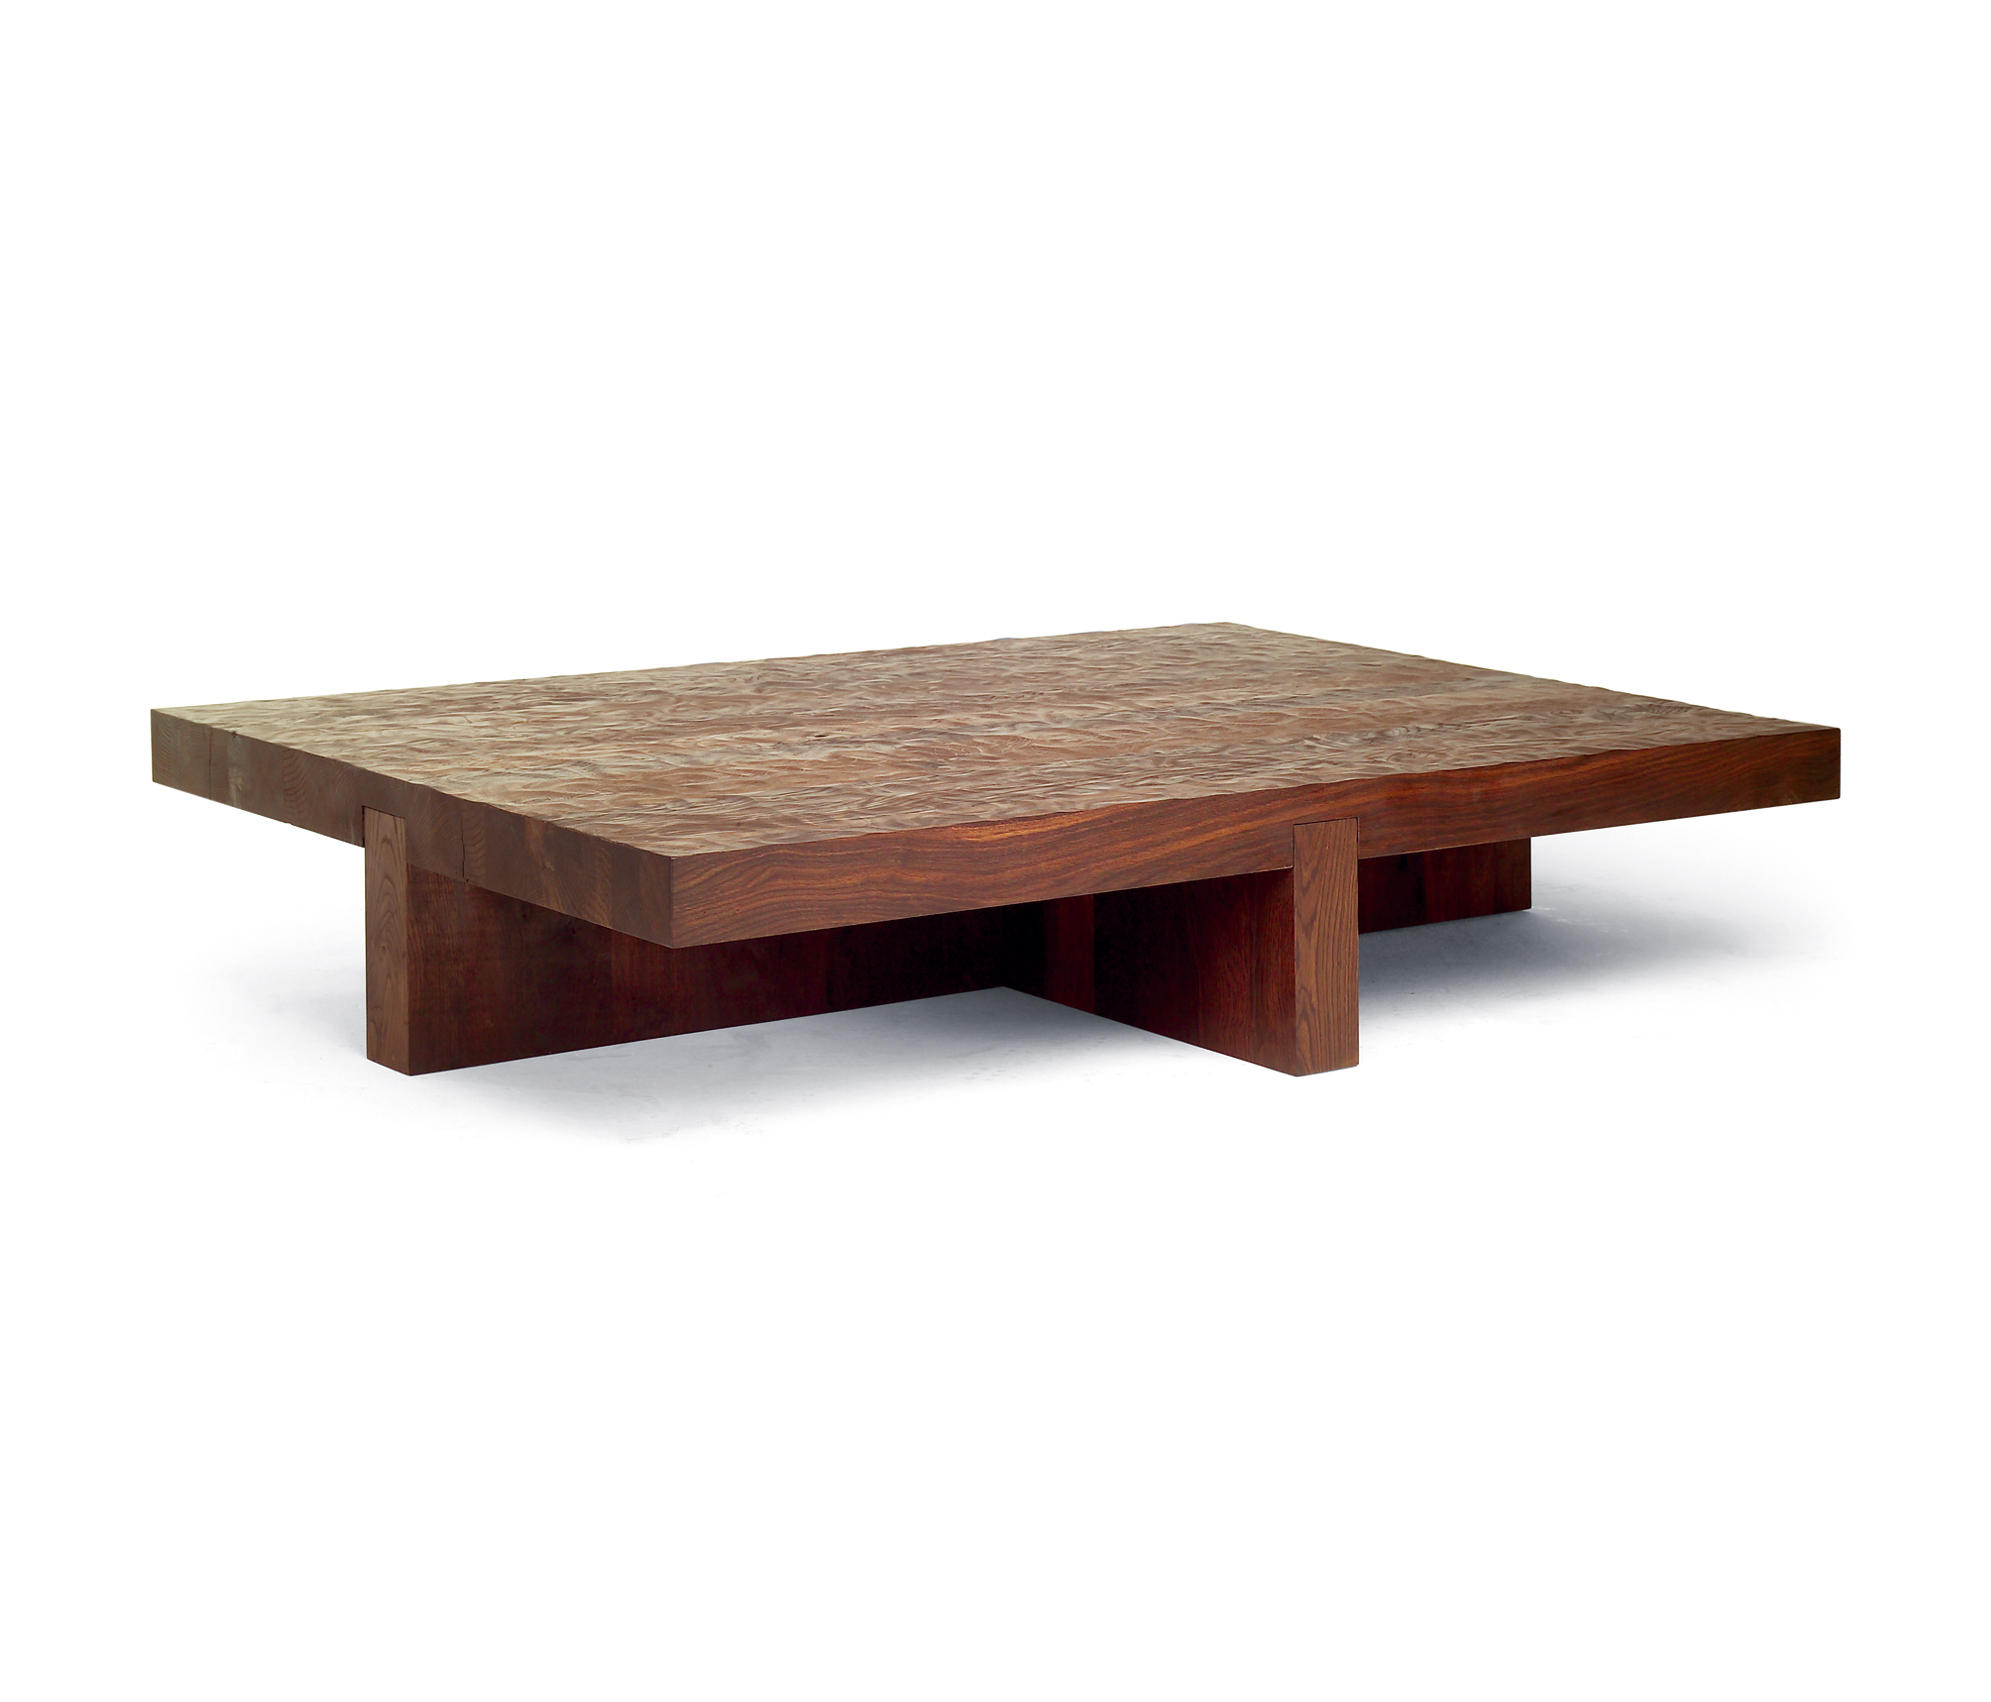 low tide coffee table  lounge tables from linteloo  architonic - low tide coffee table by linteloo  lounge tables